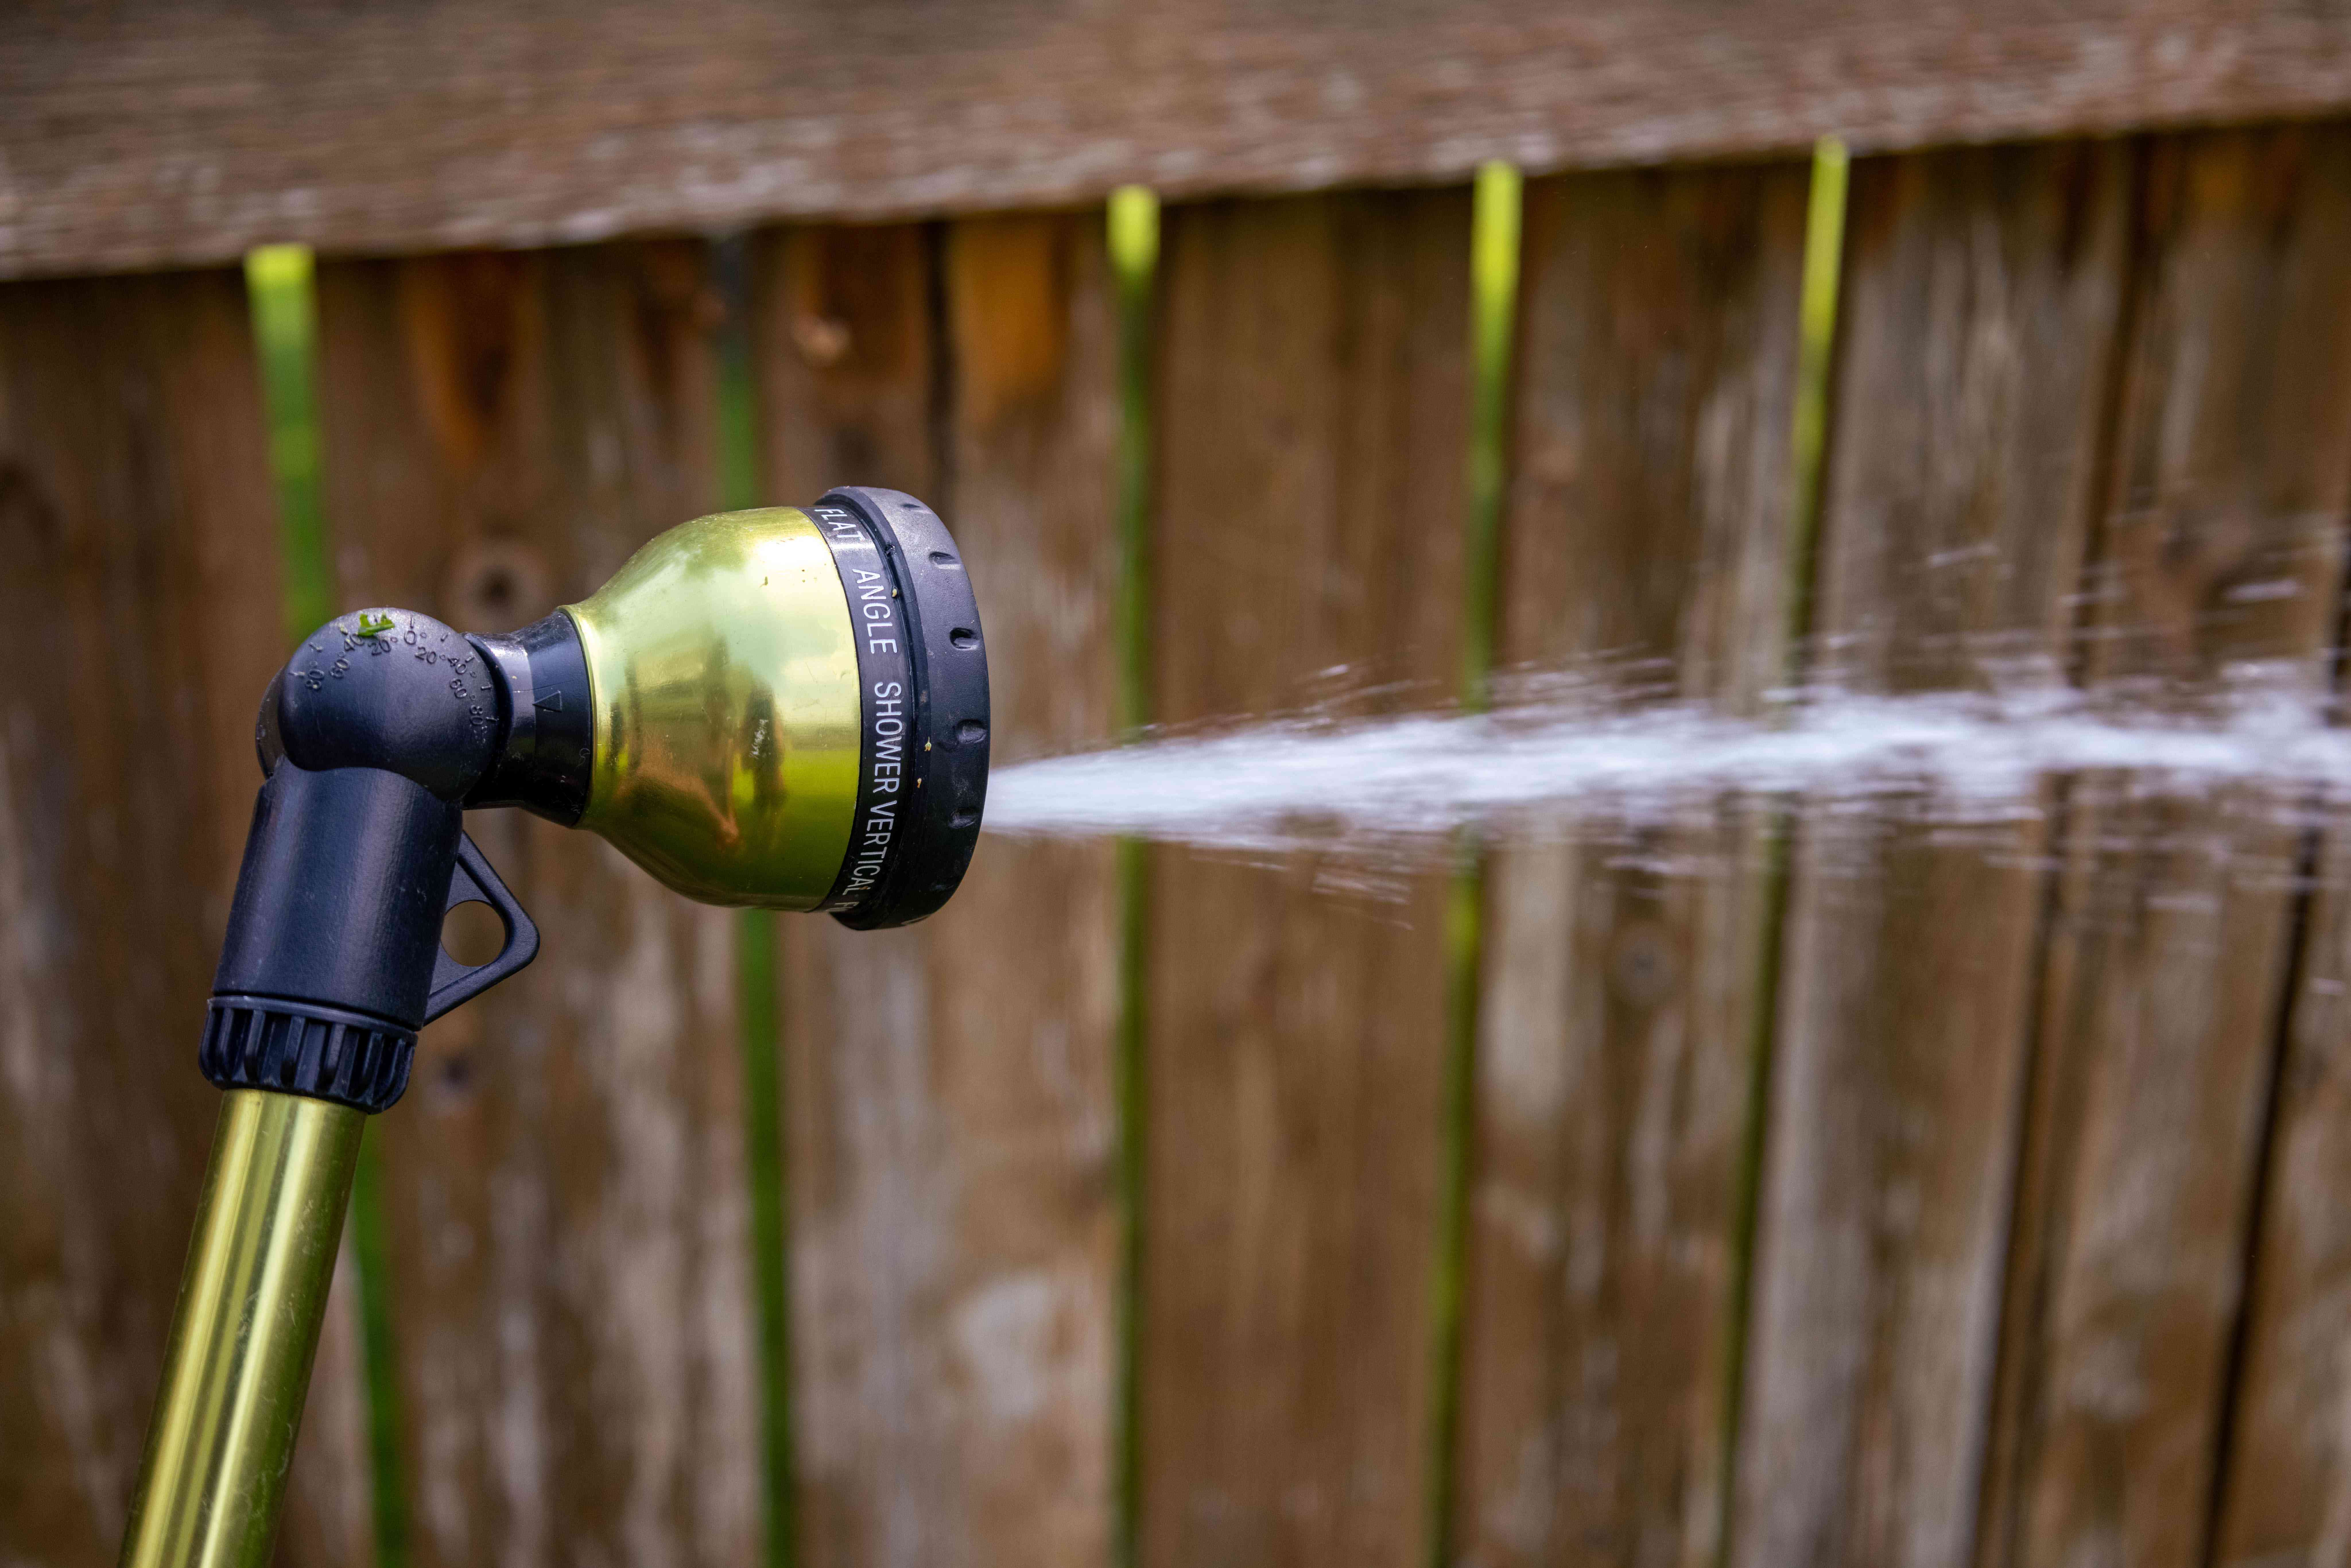 hose with nozzle attachment is sprayed outside in yard next to wooden fence